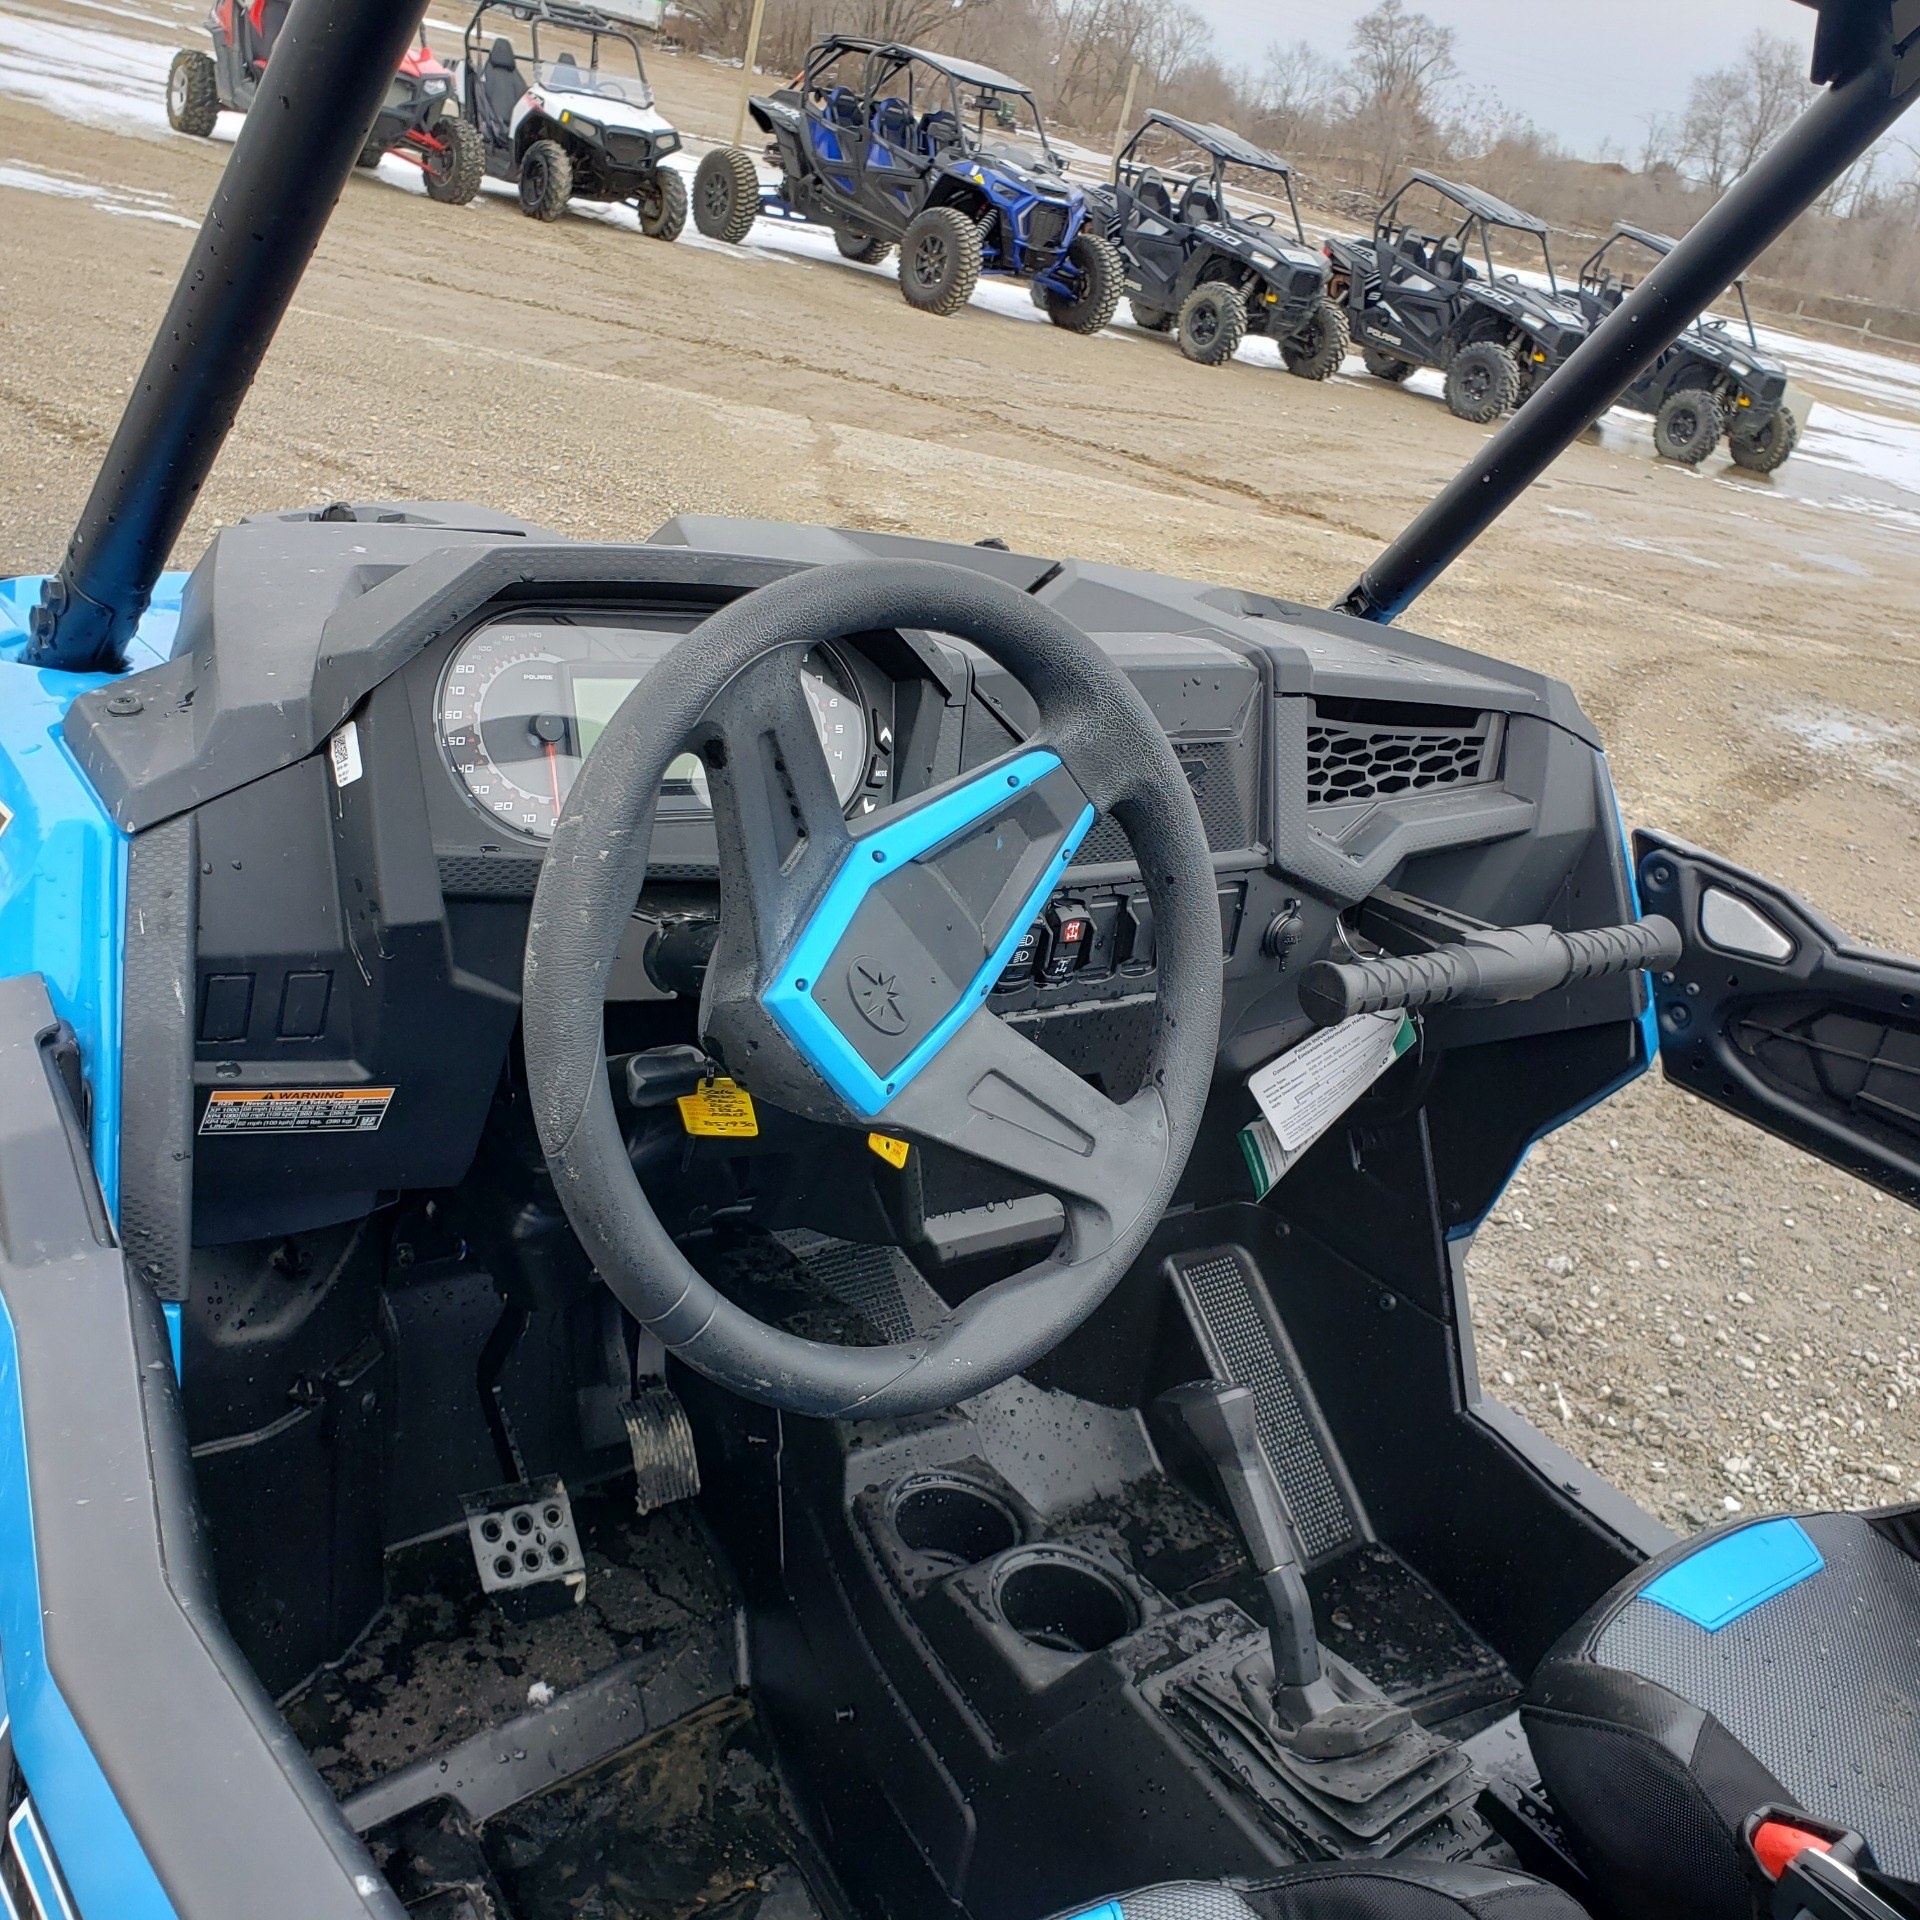 2020 Polaris RZR XP 1000 in Attica, Indiana - Photo 17